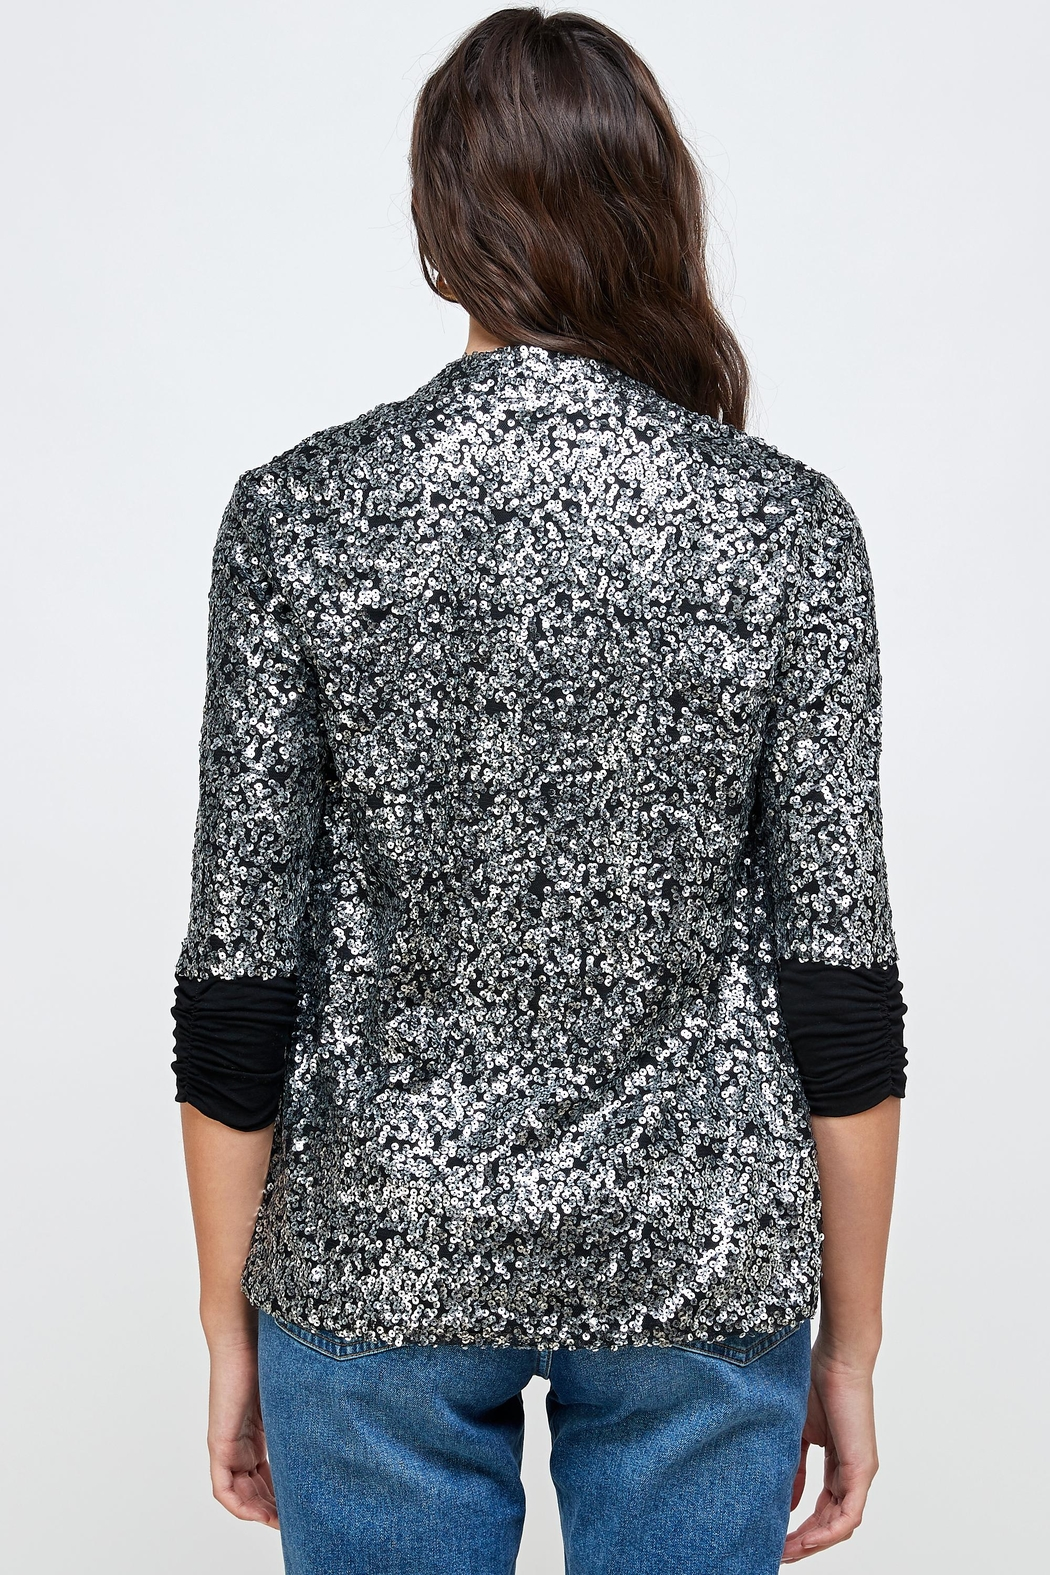 Kaii Sequins Cover Up Party Blazer Top - Side Cropped Image